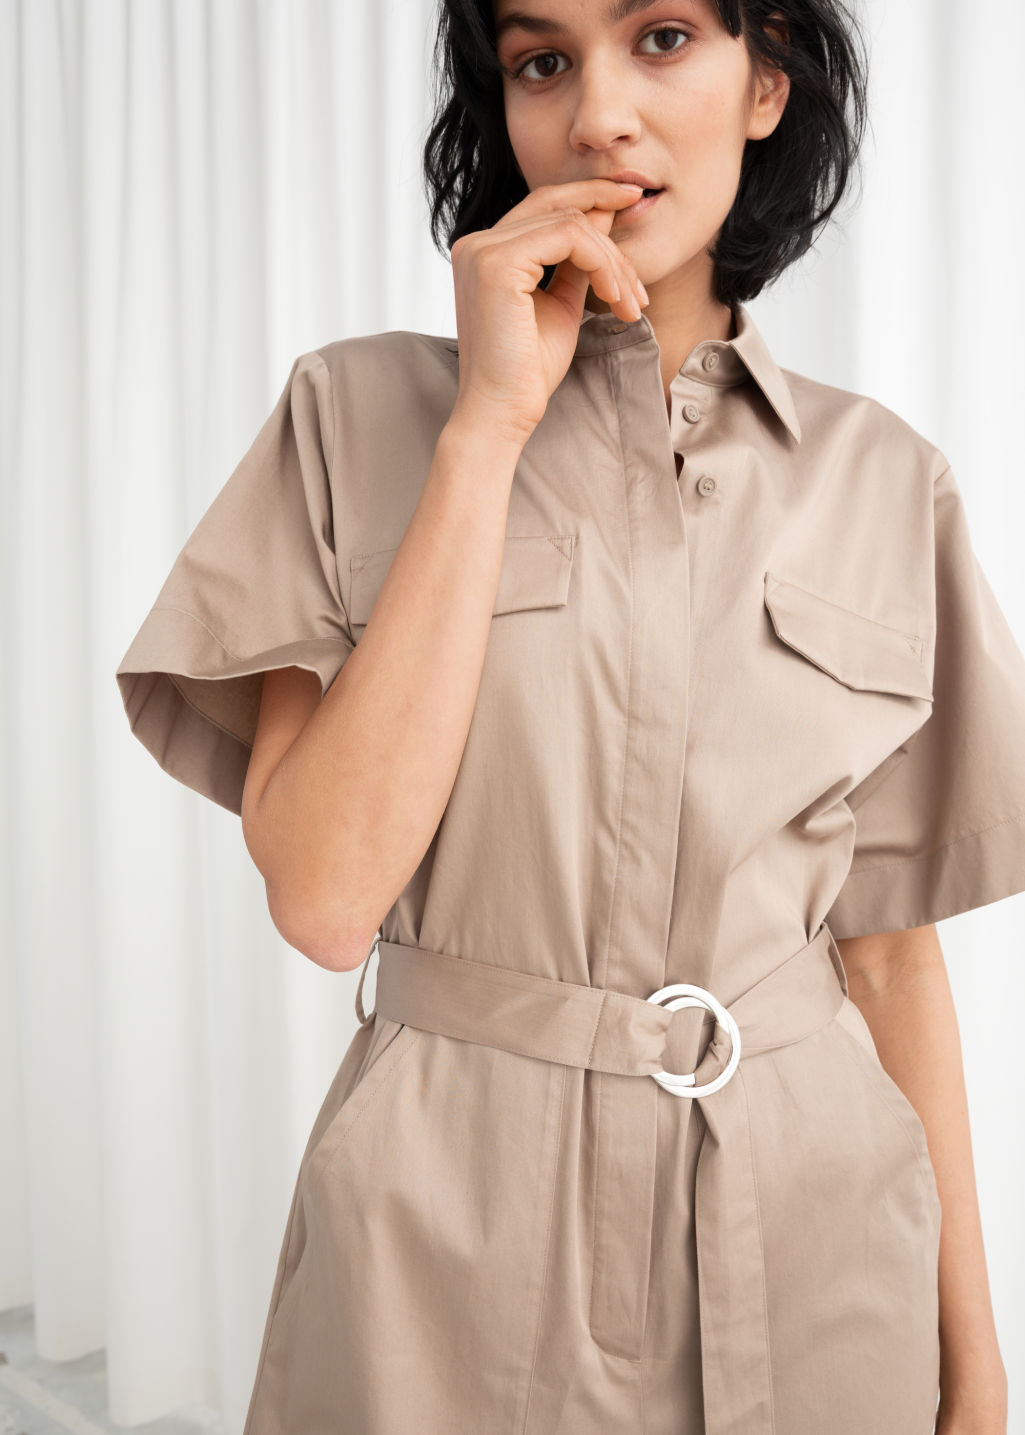 2ec44178af4 Belted Cotton Workwear Boilersuit - Beige - Jumpsuits   Playsuits ...